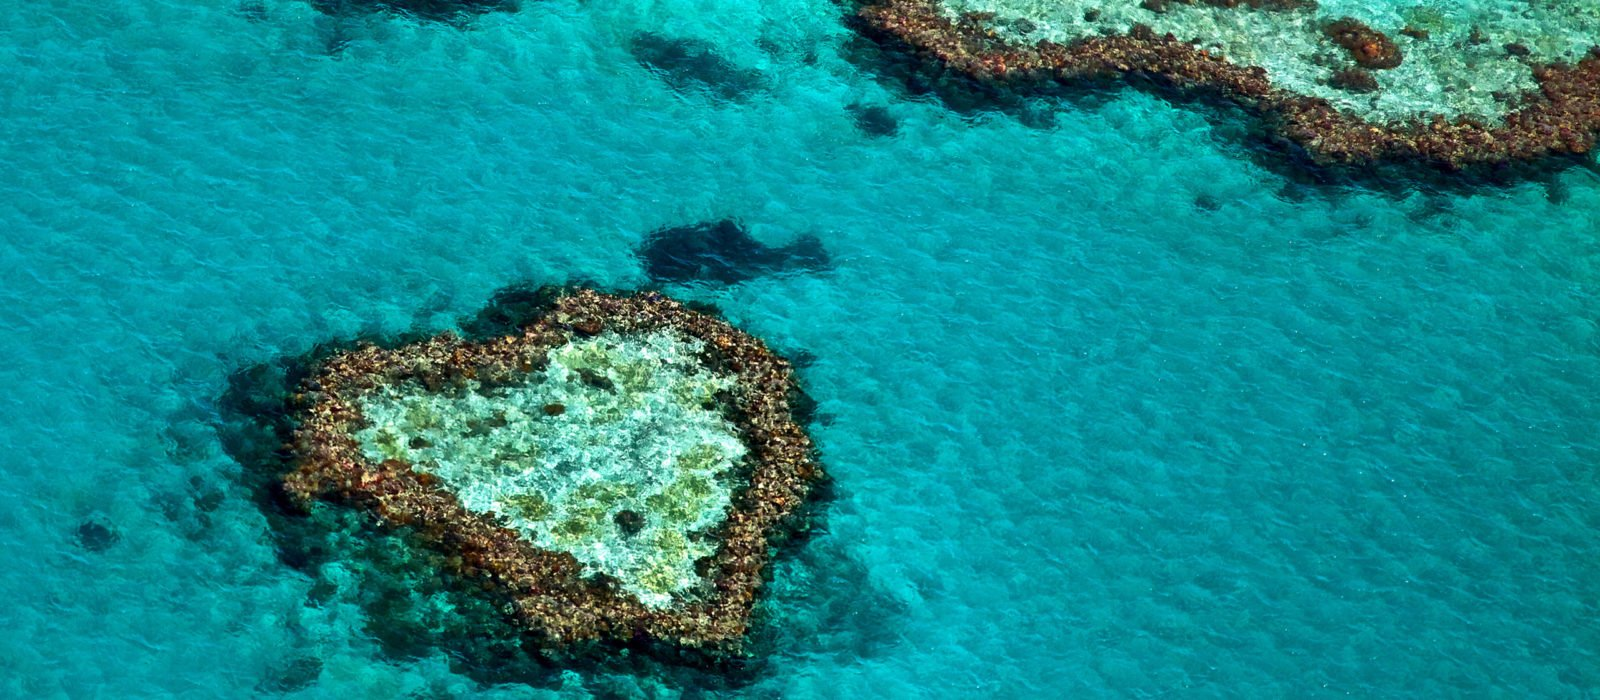 heart-reef-great-barrier-reef-whitsundays-australia